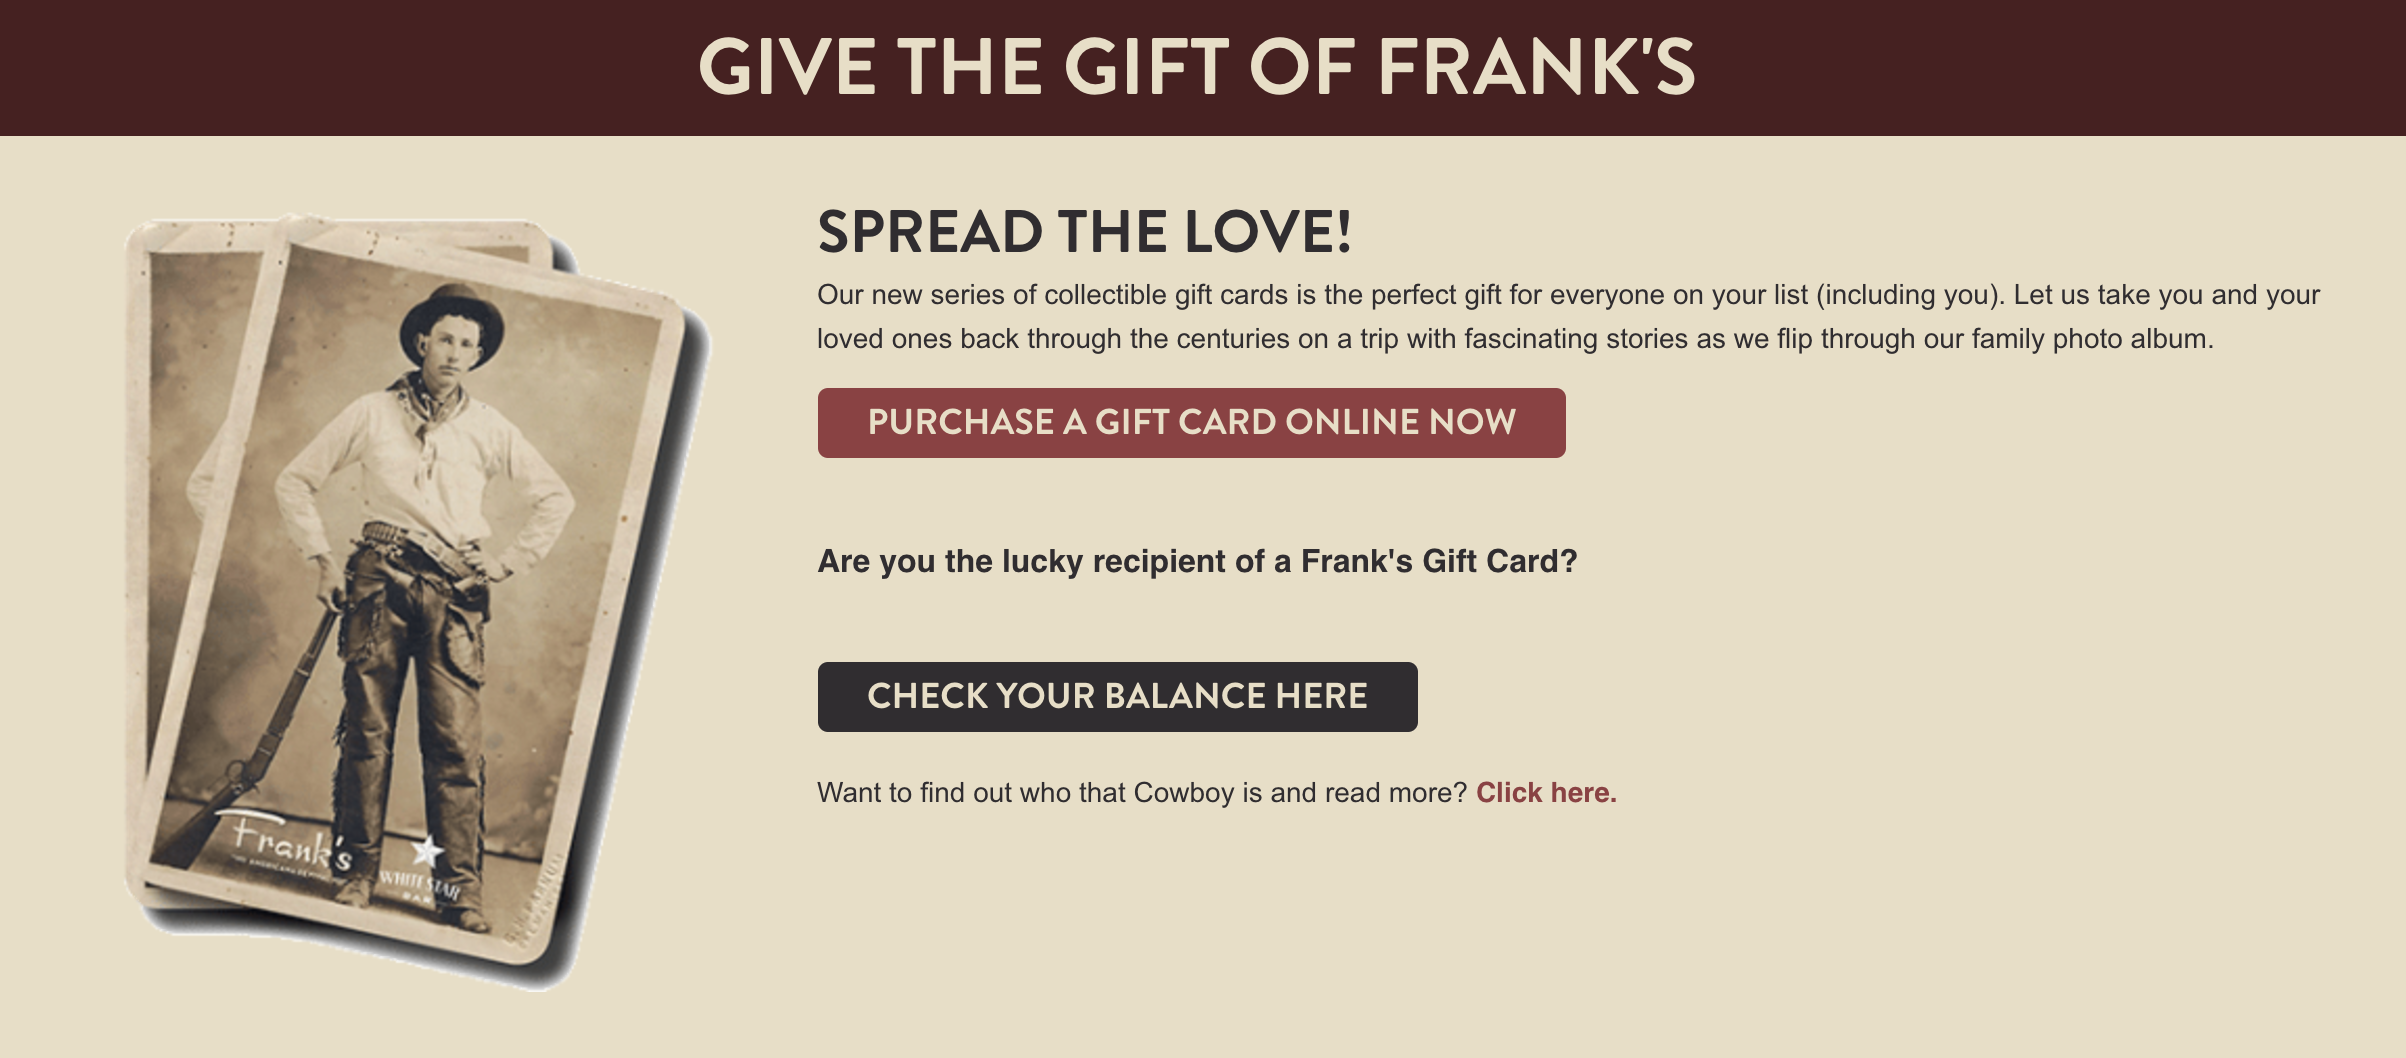 Frank's website by Blue Sky Marketing